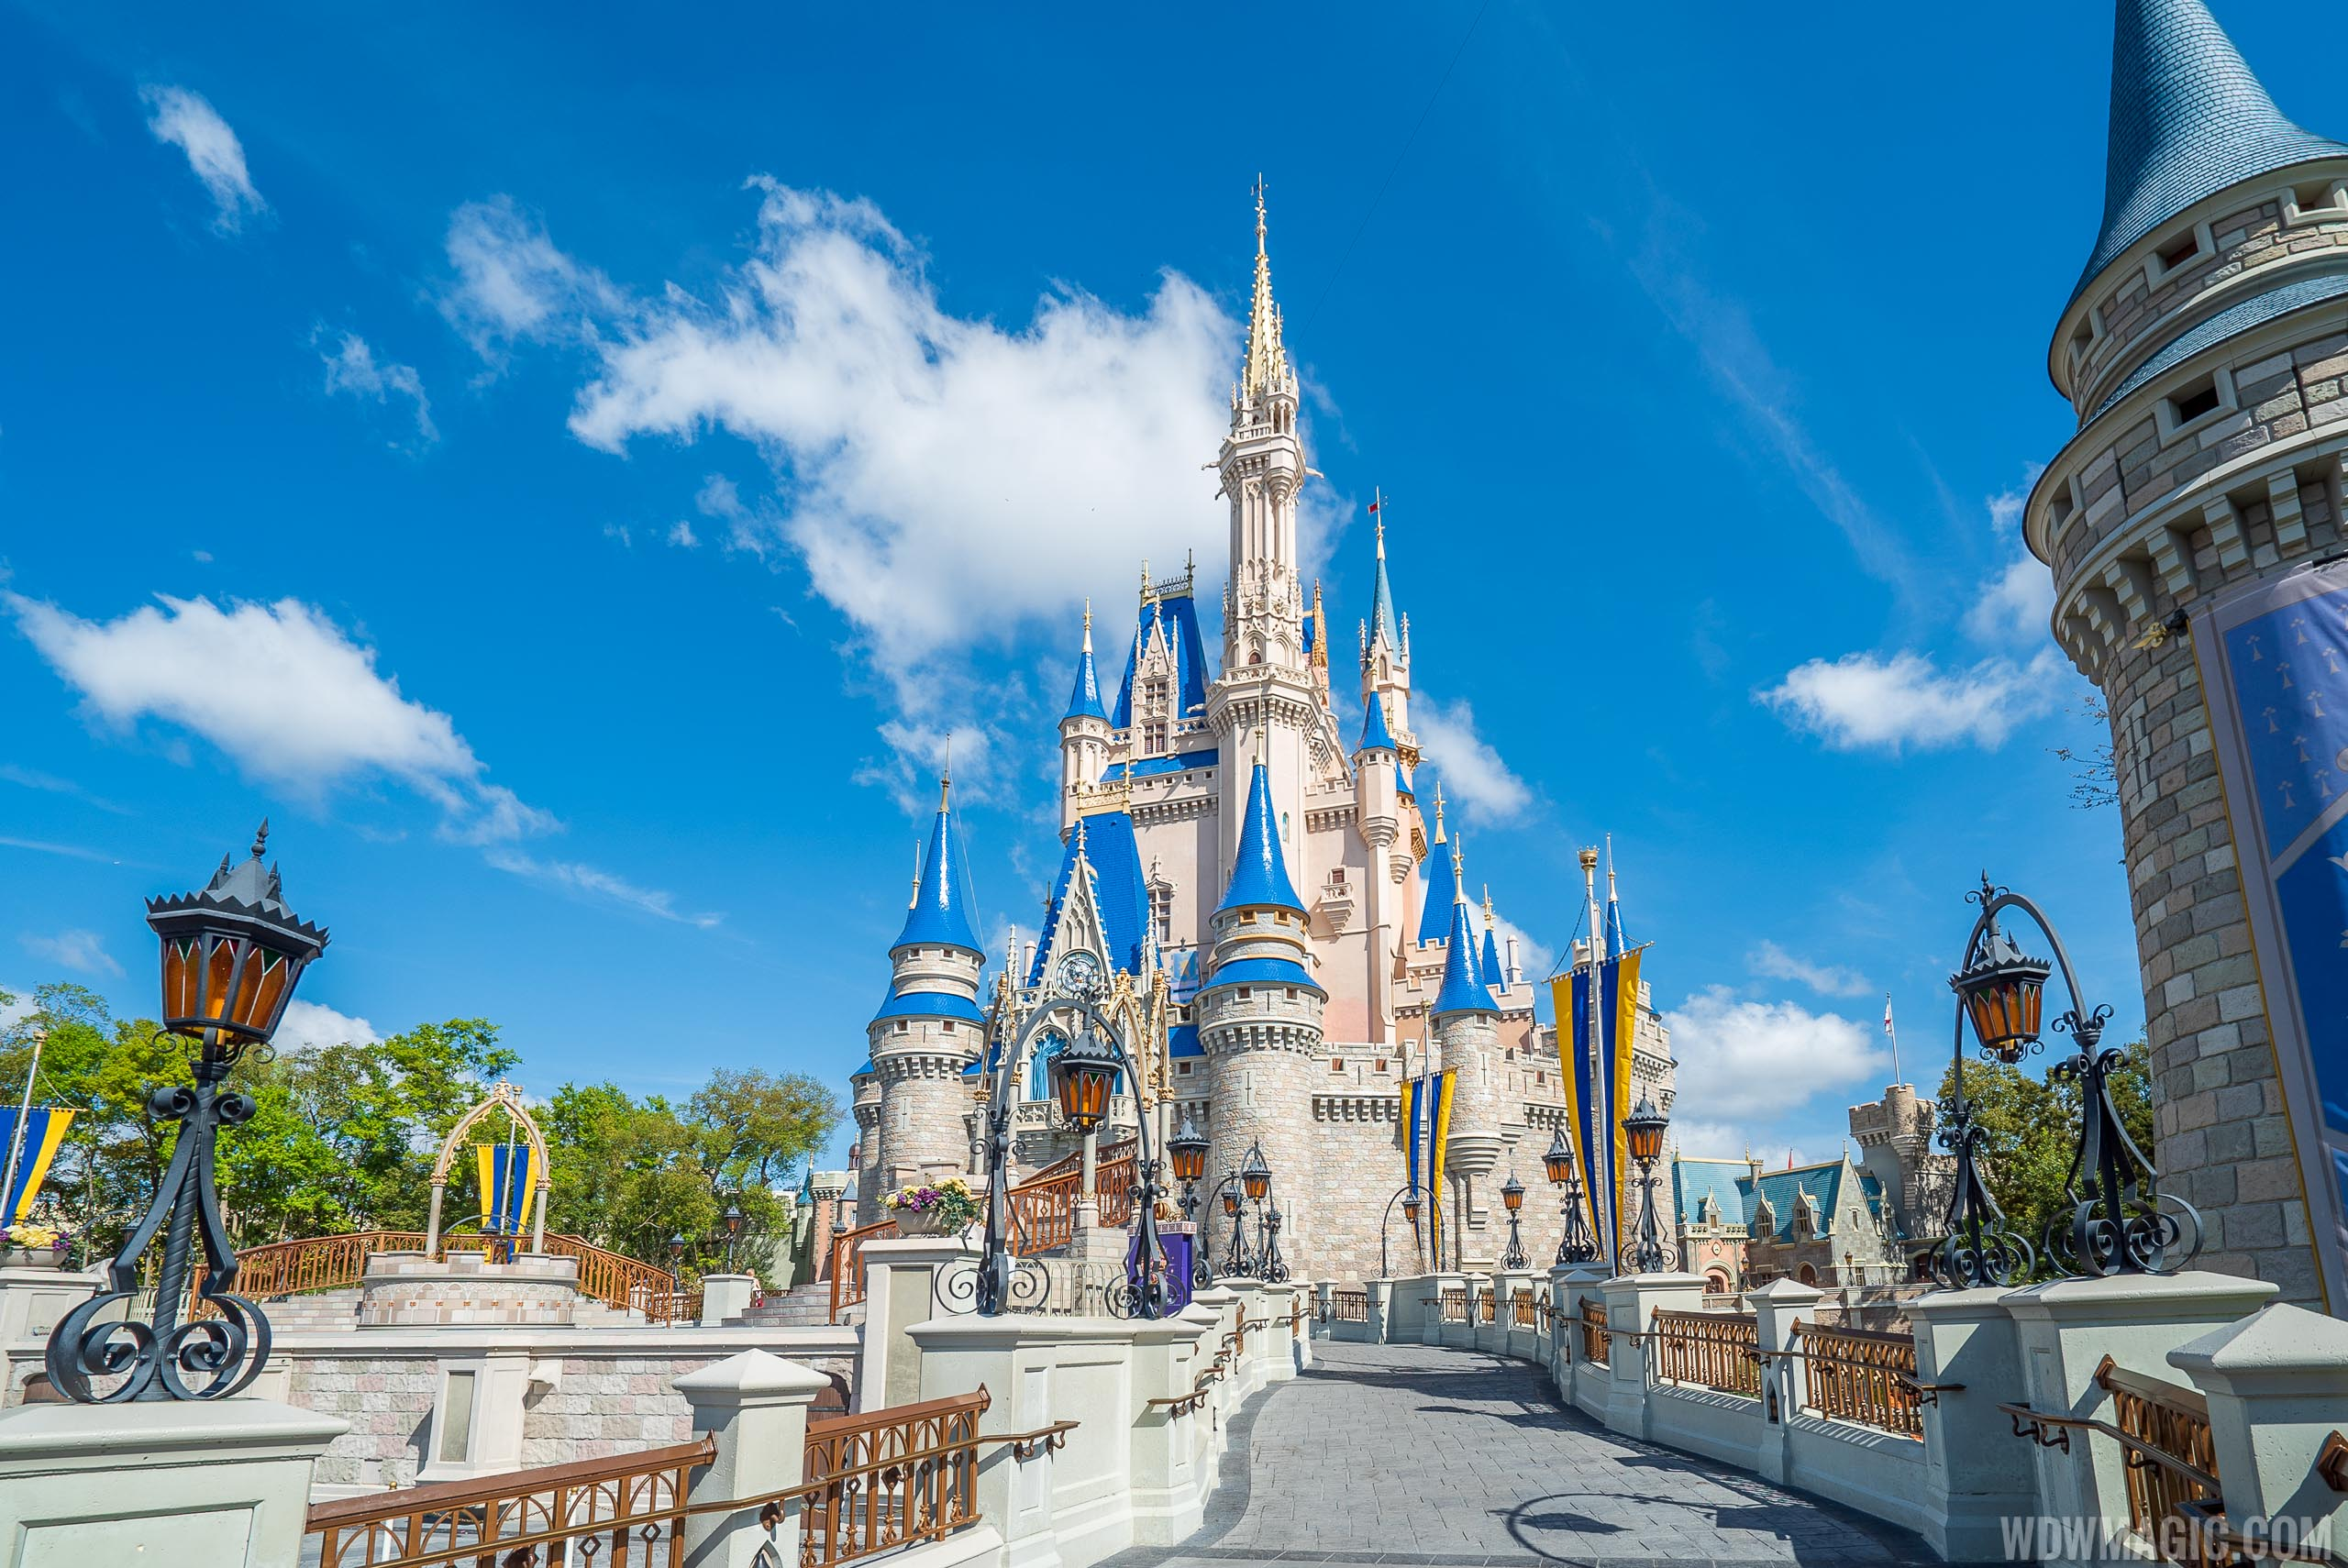 Temperature screening requirement already dropped from Walt Disney World hotel restaurants according to the official website